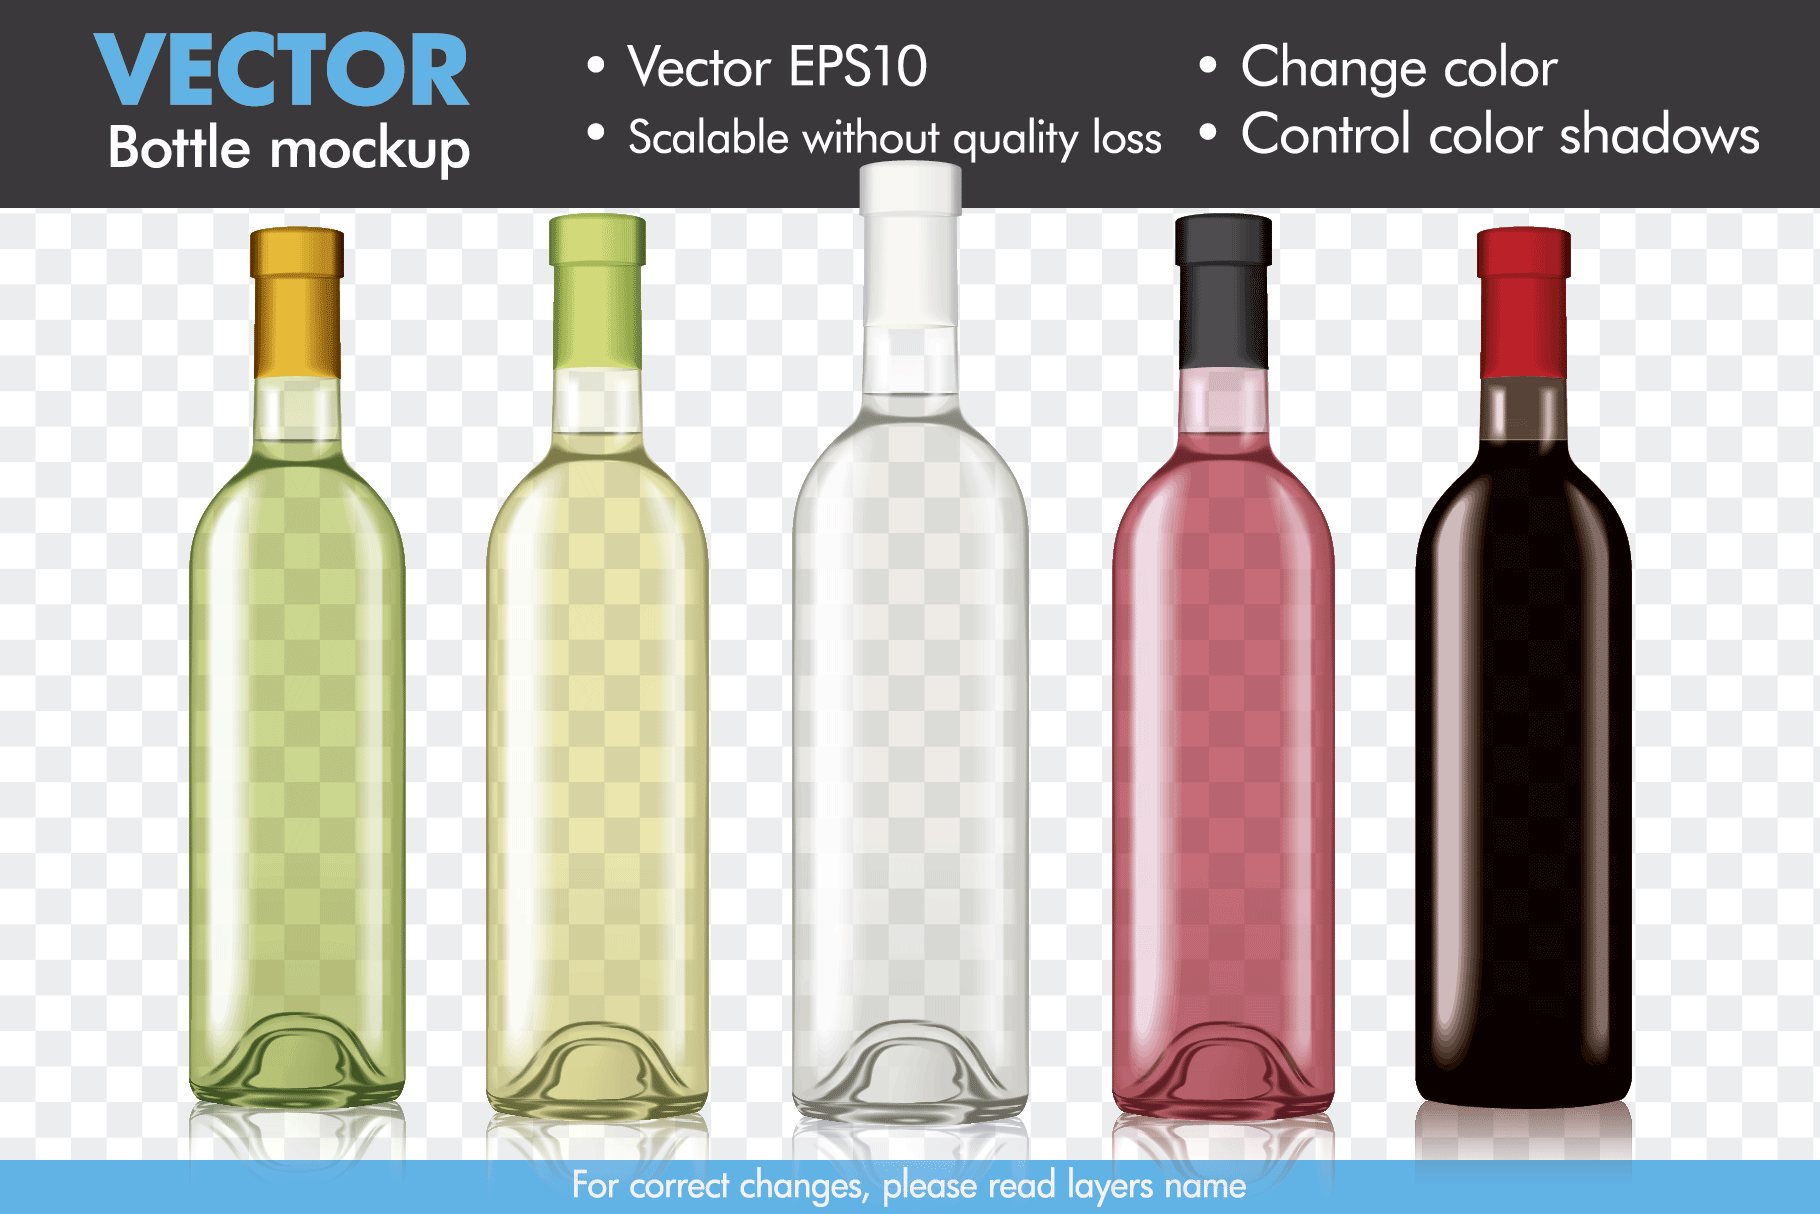 image library stock Wine mock up mockup. Vector bottle template